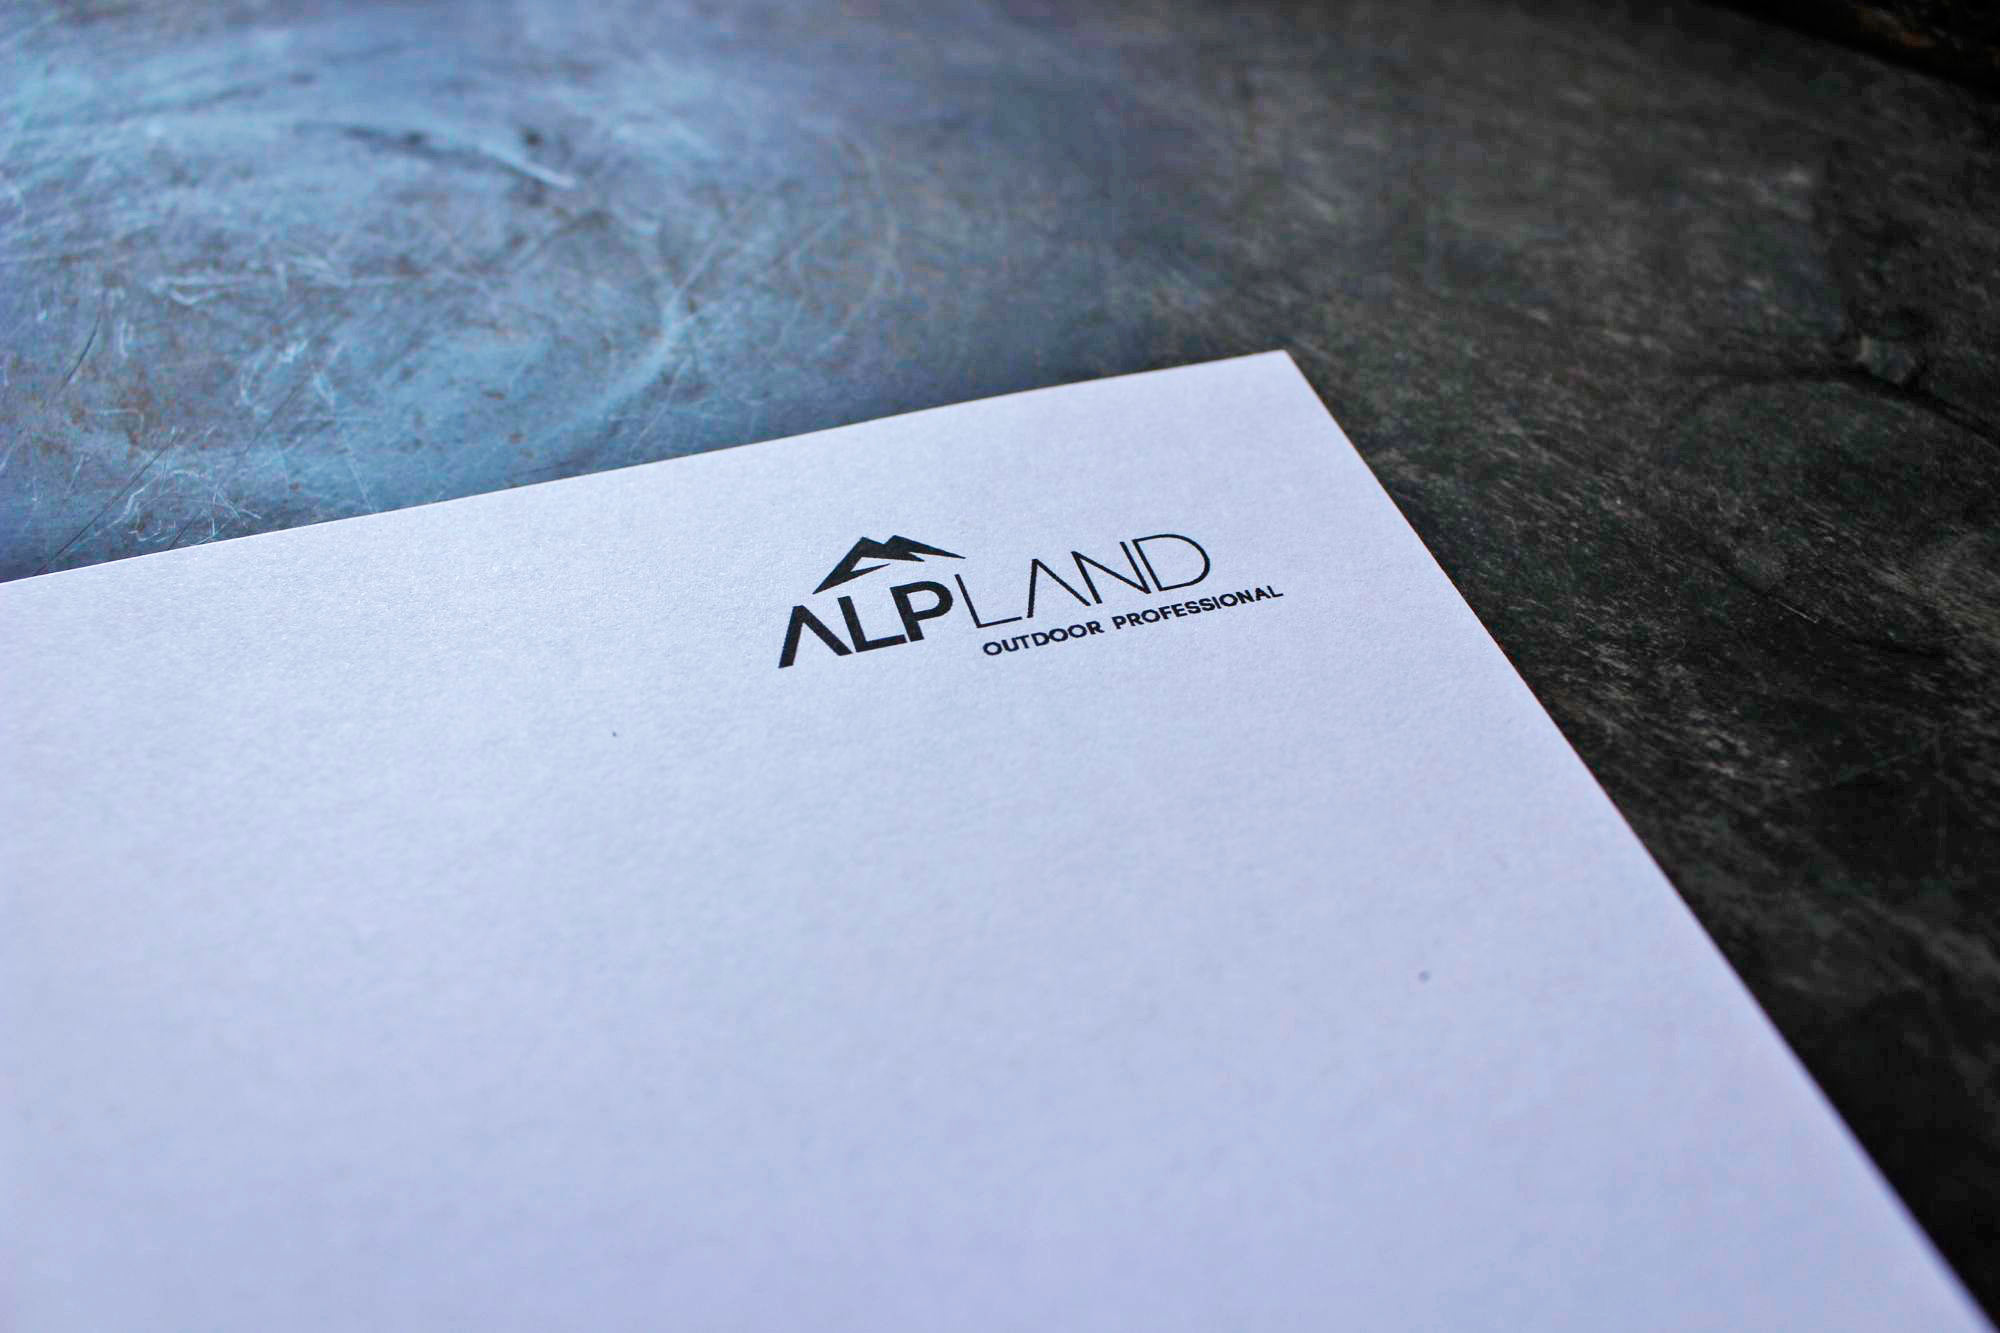 Corporate Design für alpland